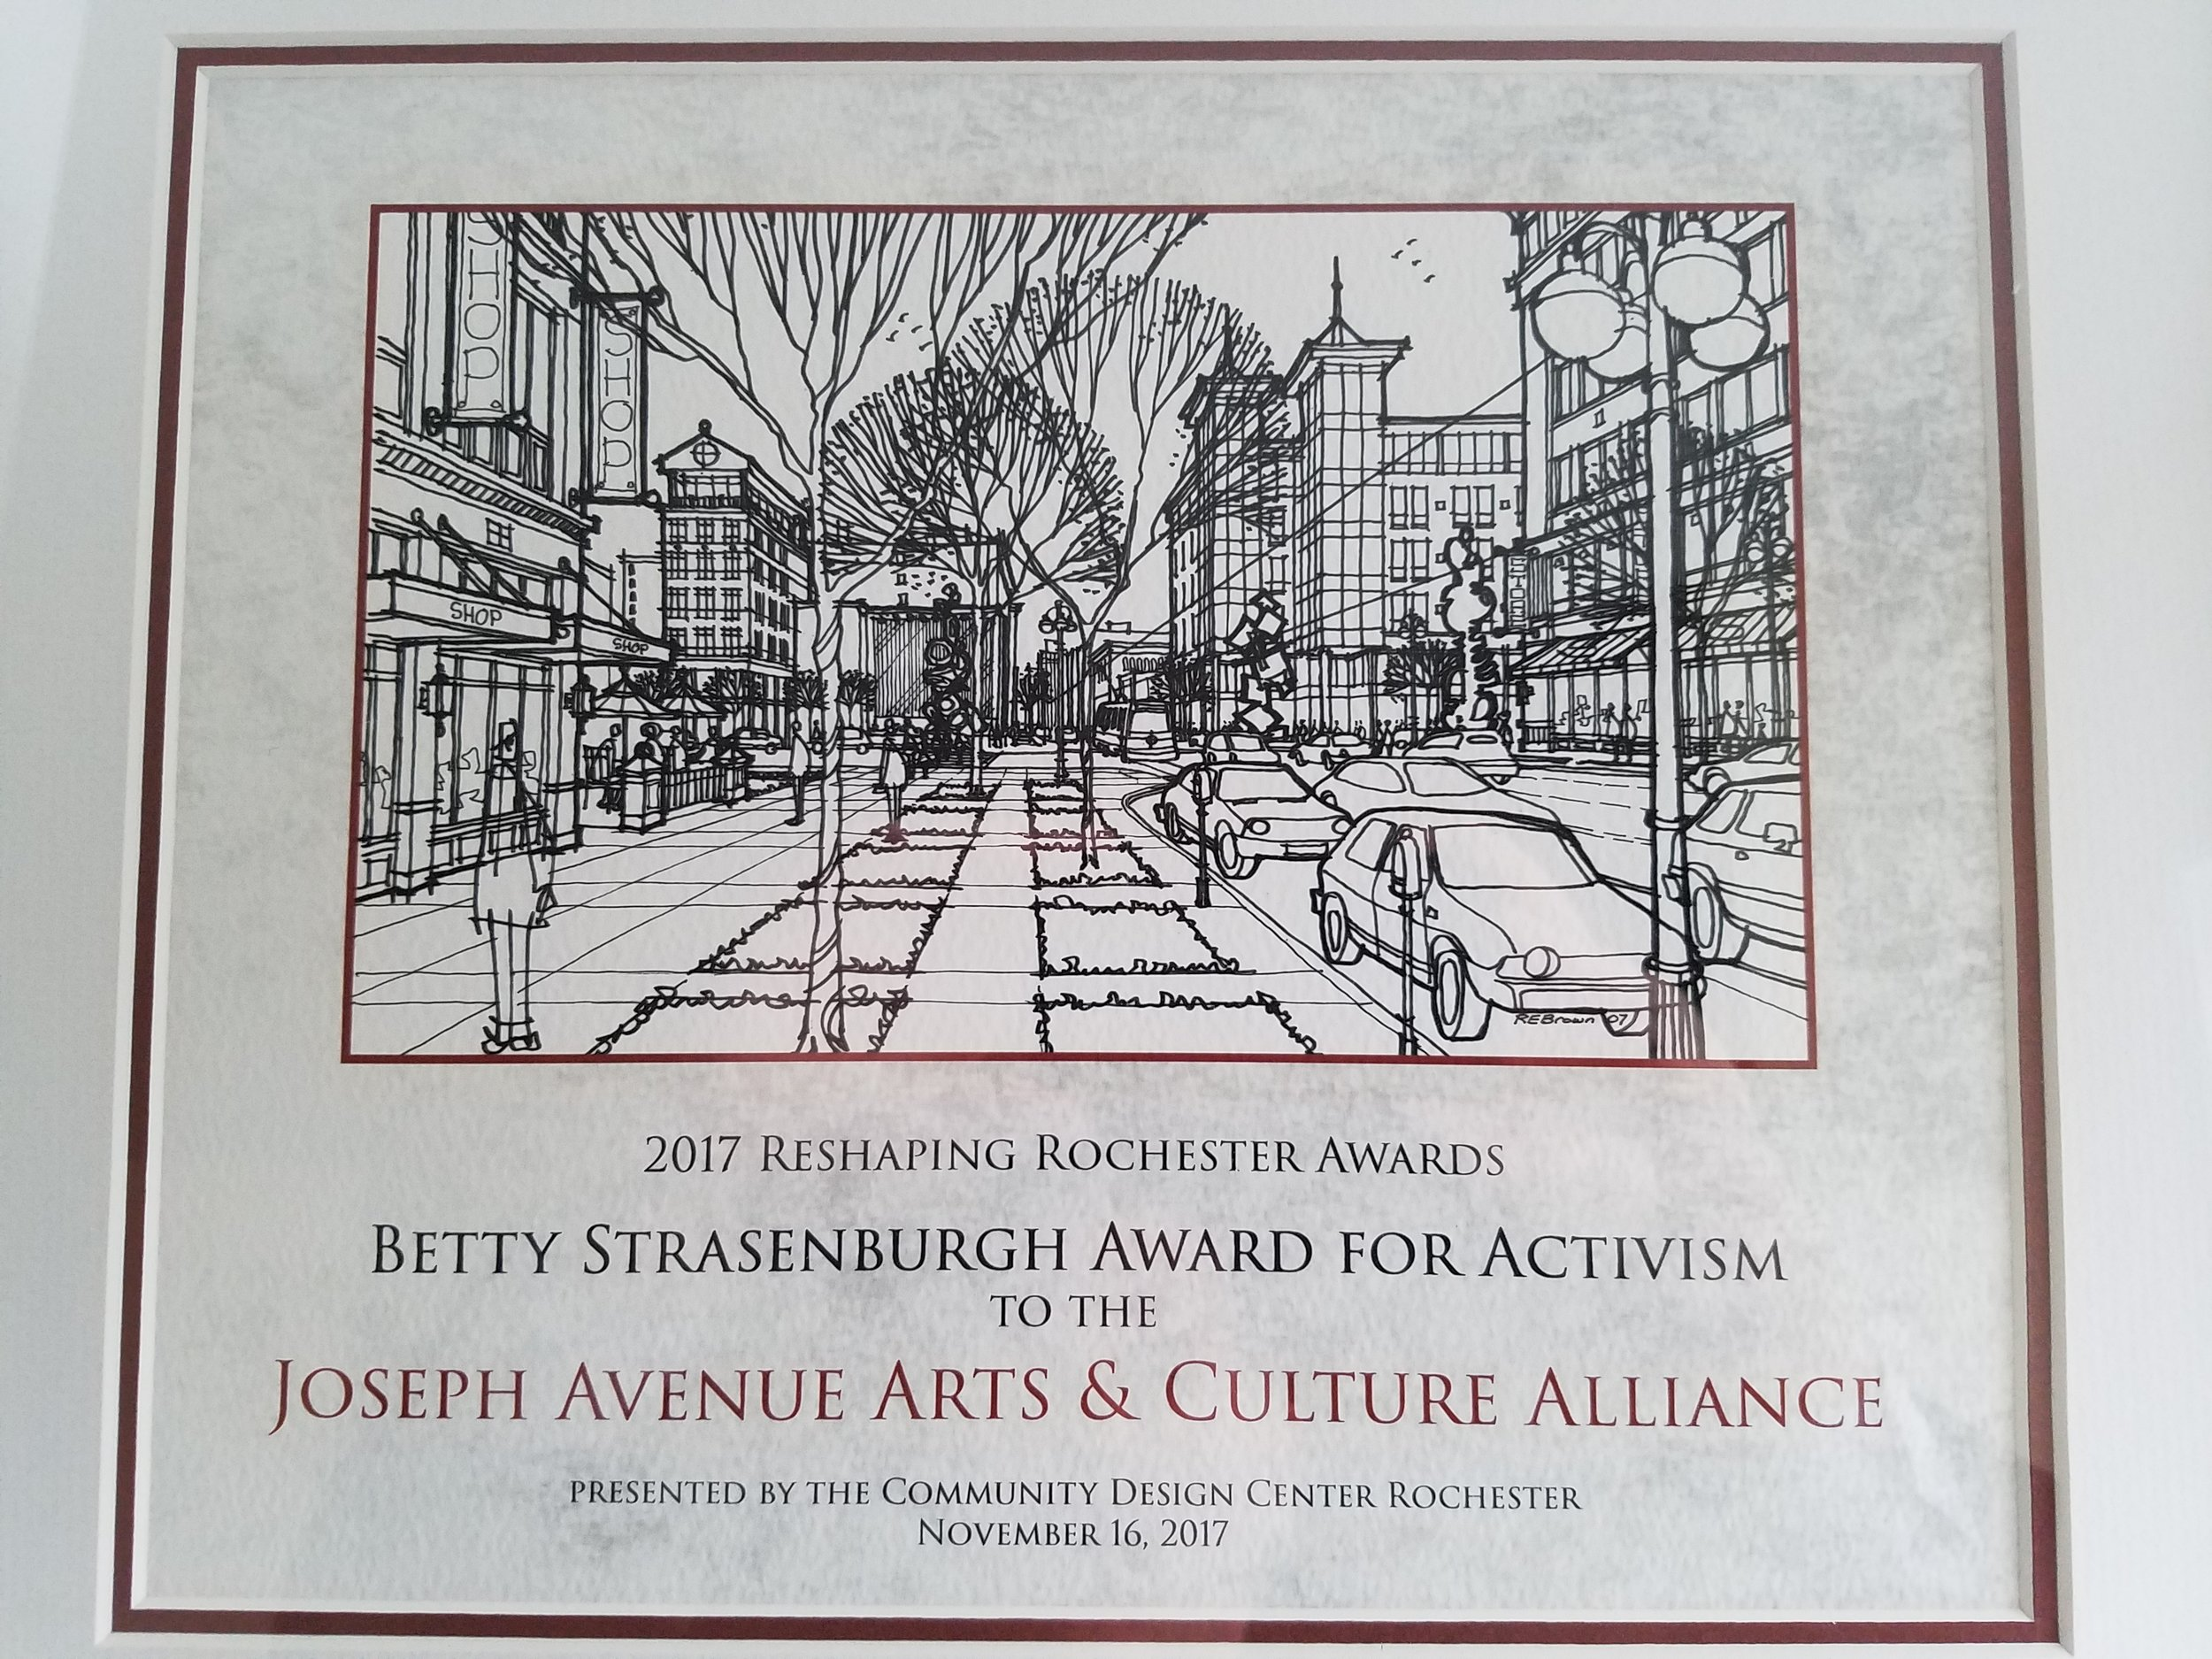 JAACA Strasenburgh Award 2017.jpg